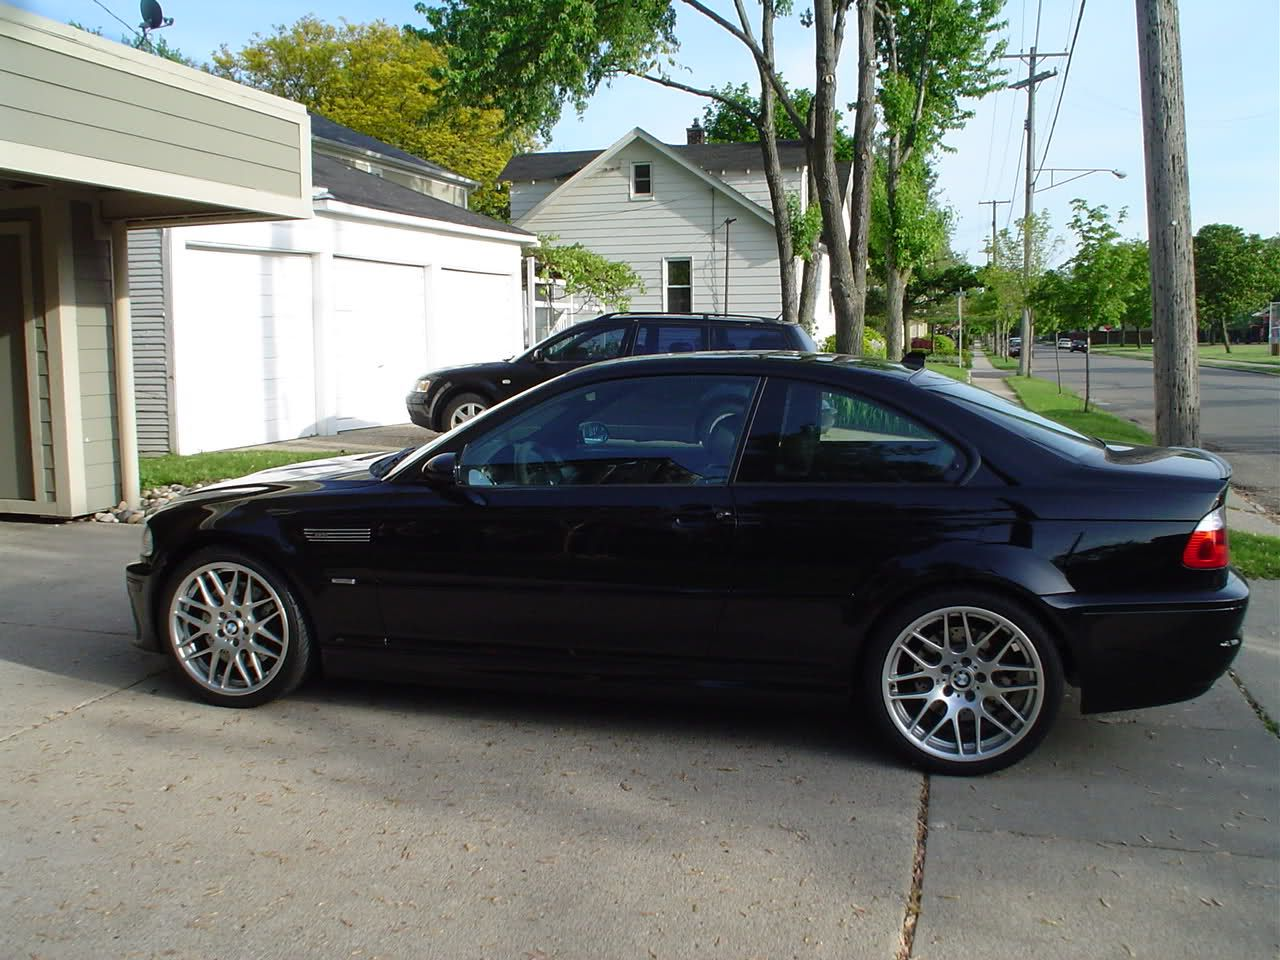 fs oem zcp competition package wheels e46 m3. Black Bedroom Furniture Sets. Home Design Ideas